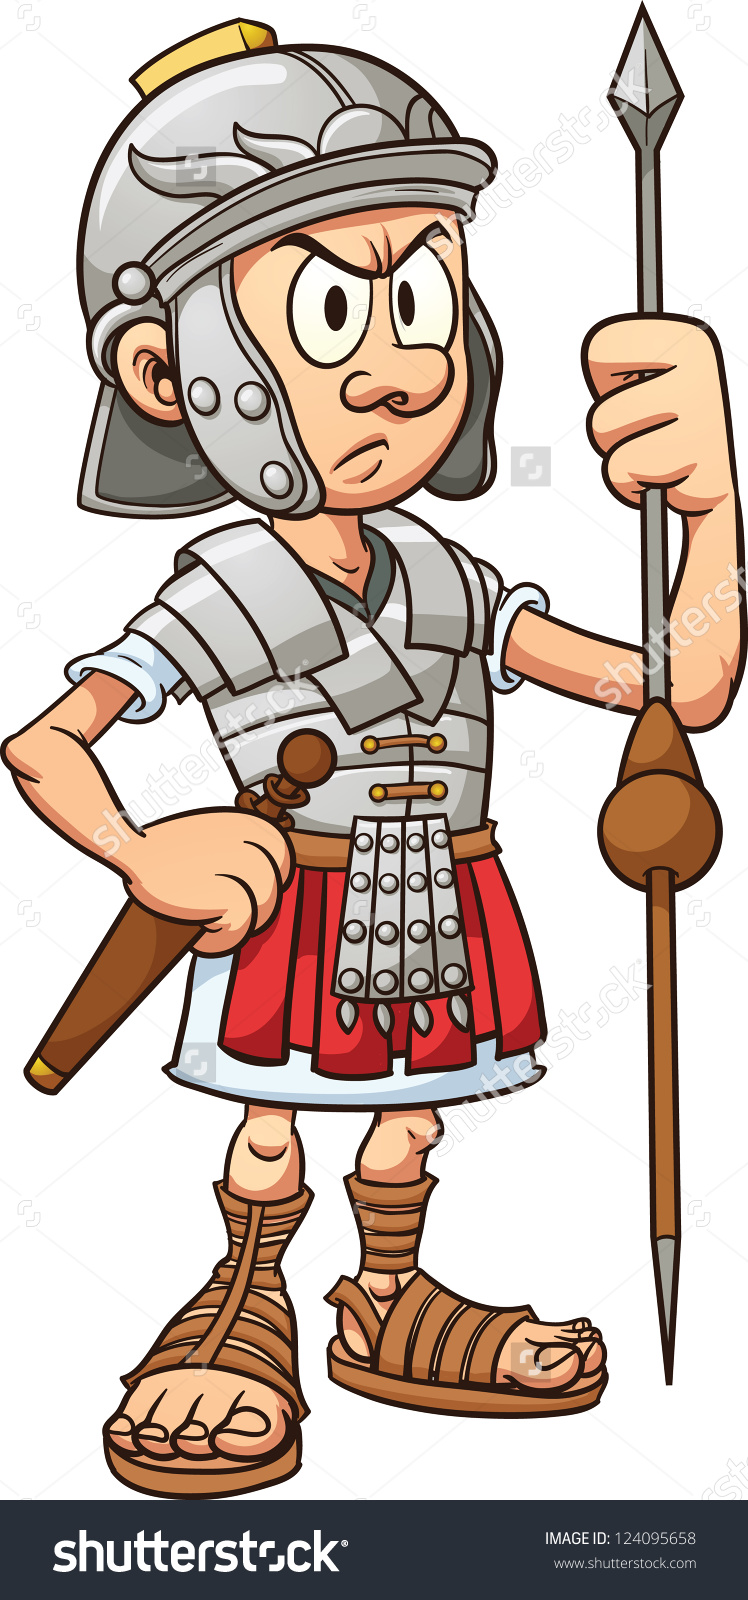 Cartoon Roman Soldier Clipart.